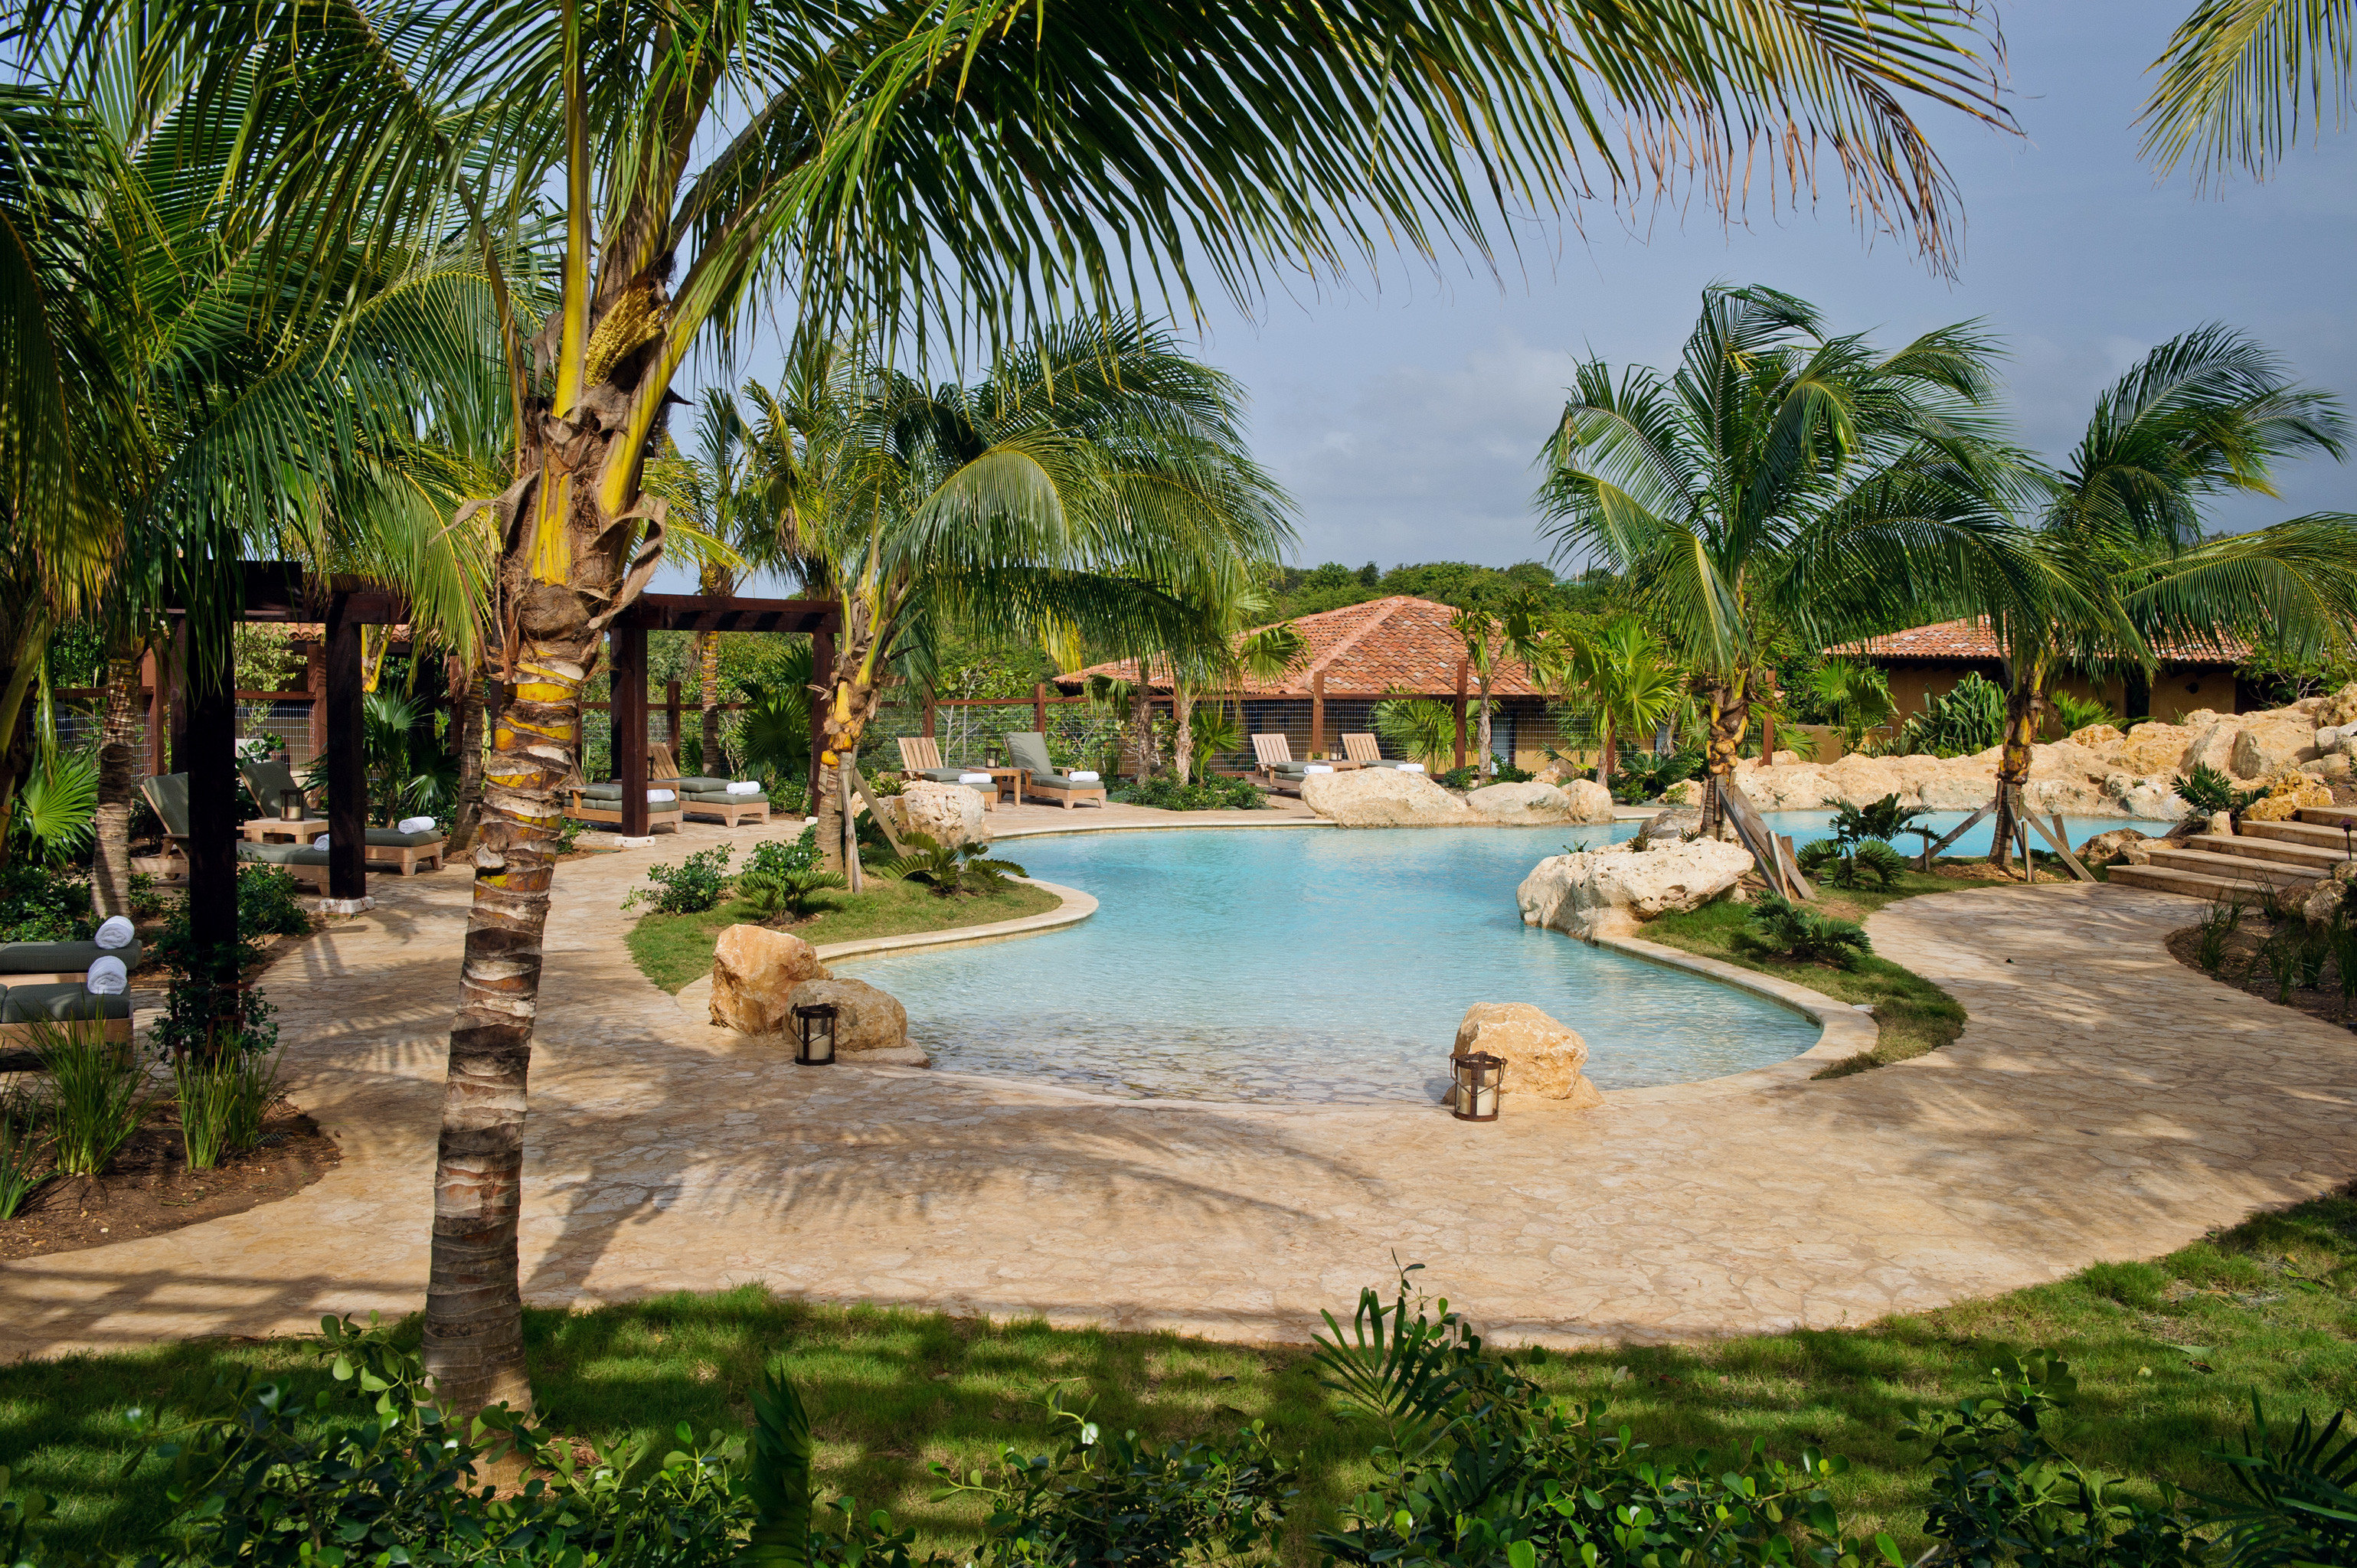 Hotels Lounge Luxury Pool Scenic views tree palm water plant leisure swimming pool Resort arecales tropics palm family Jungle lined shade shore surrounded